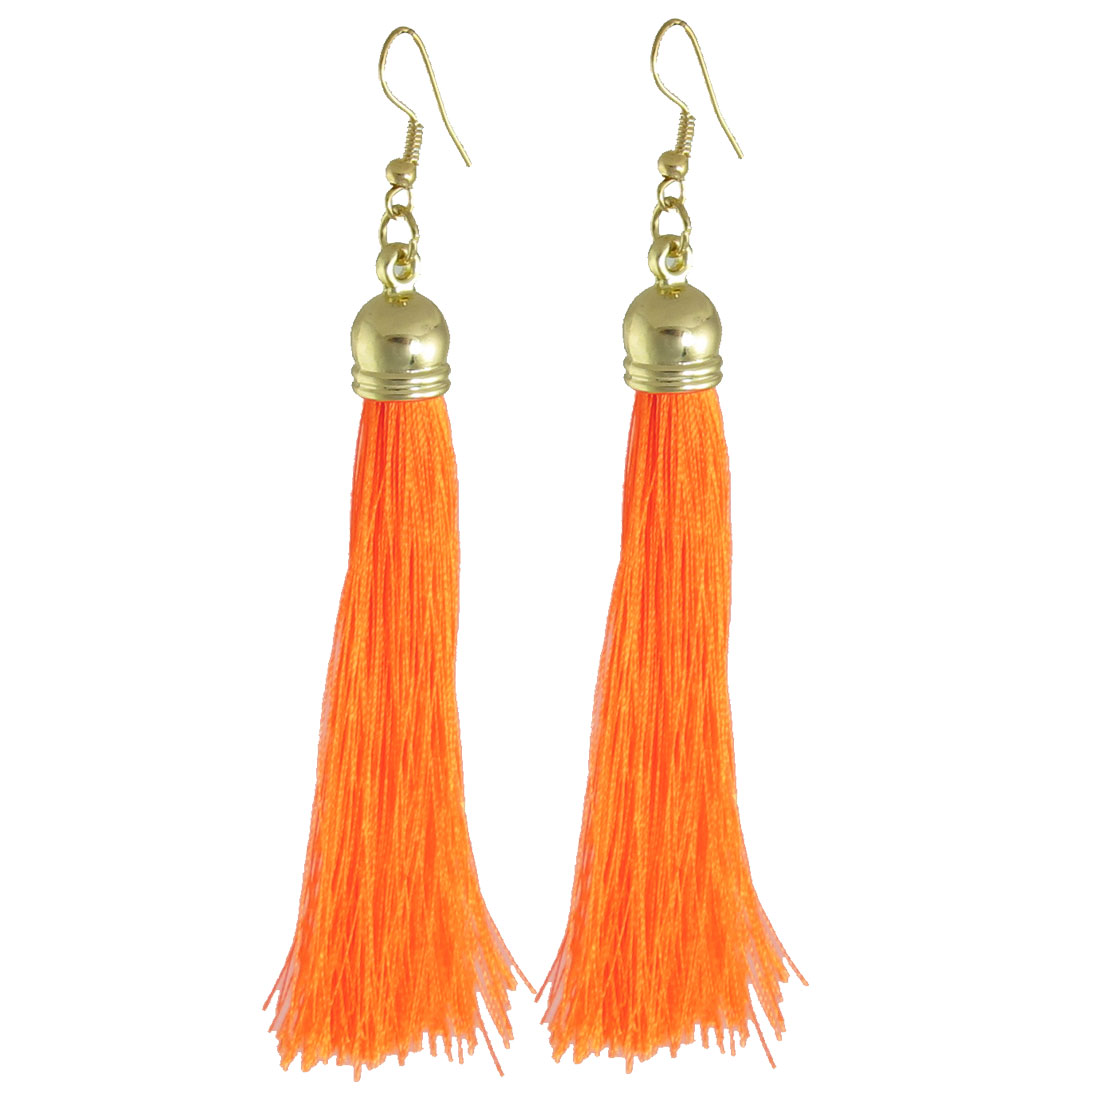 Pair Orange Nylon Tassel Dangle Fish Hook Earrings Jewelry for Women